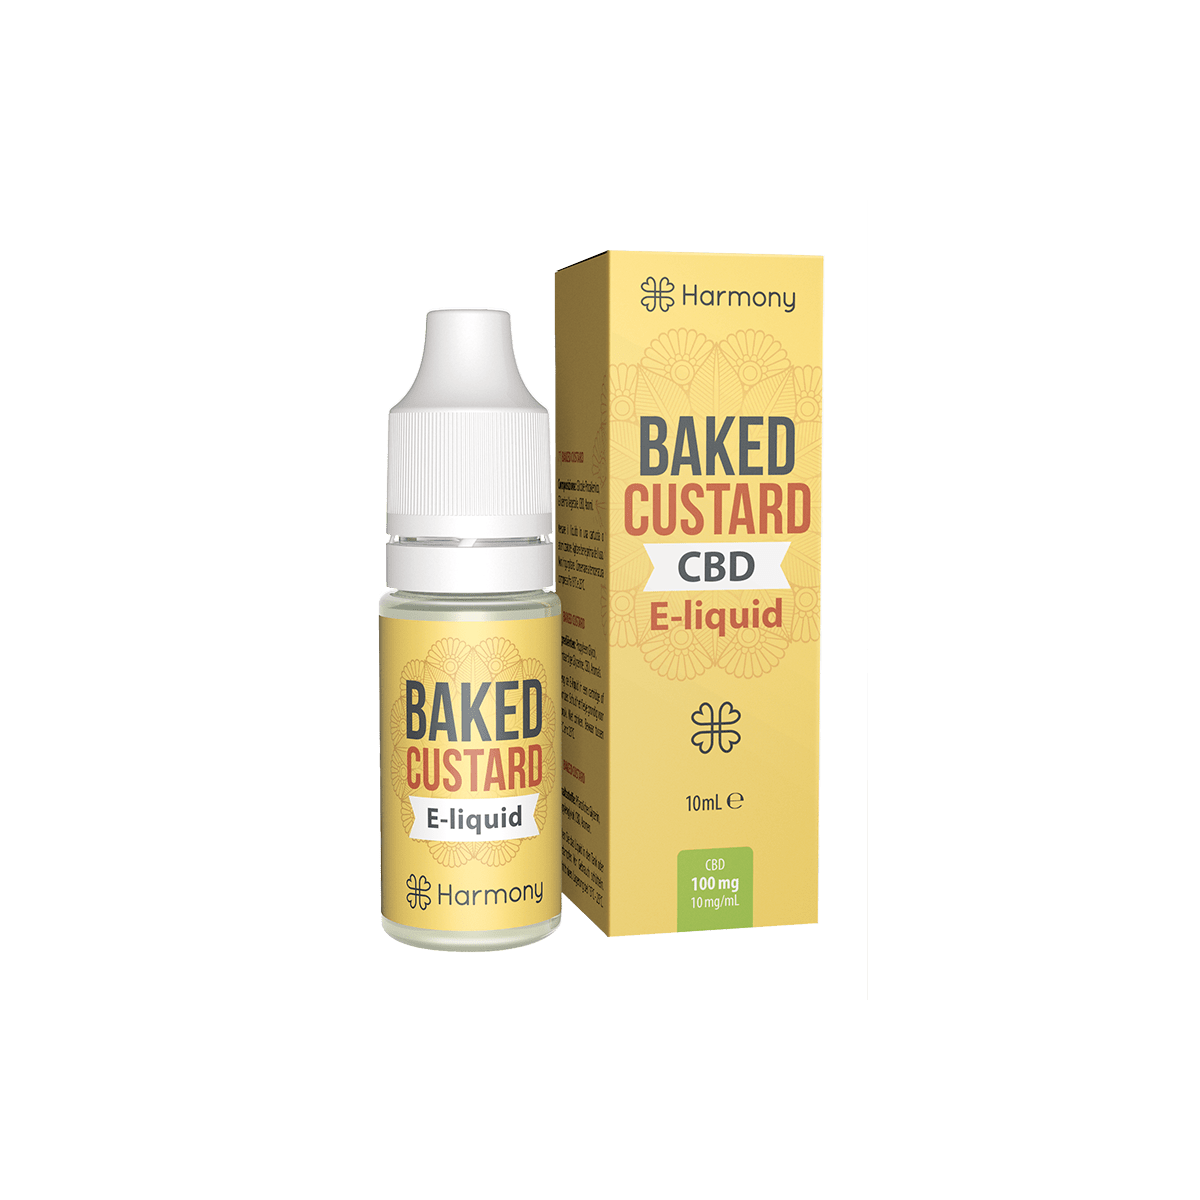 CBD Liquid | HARMONY - Baked Custard | Menge 10 ml - 300 mg